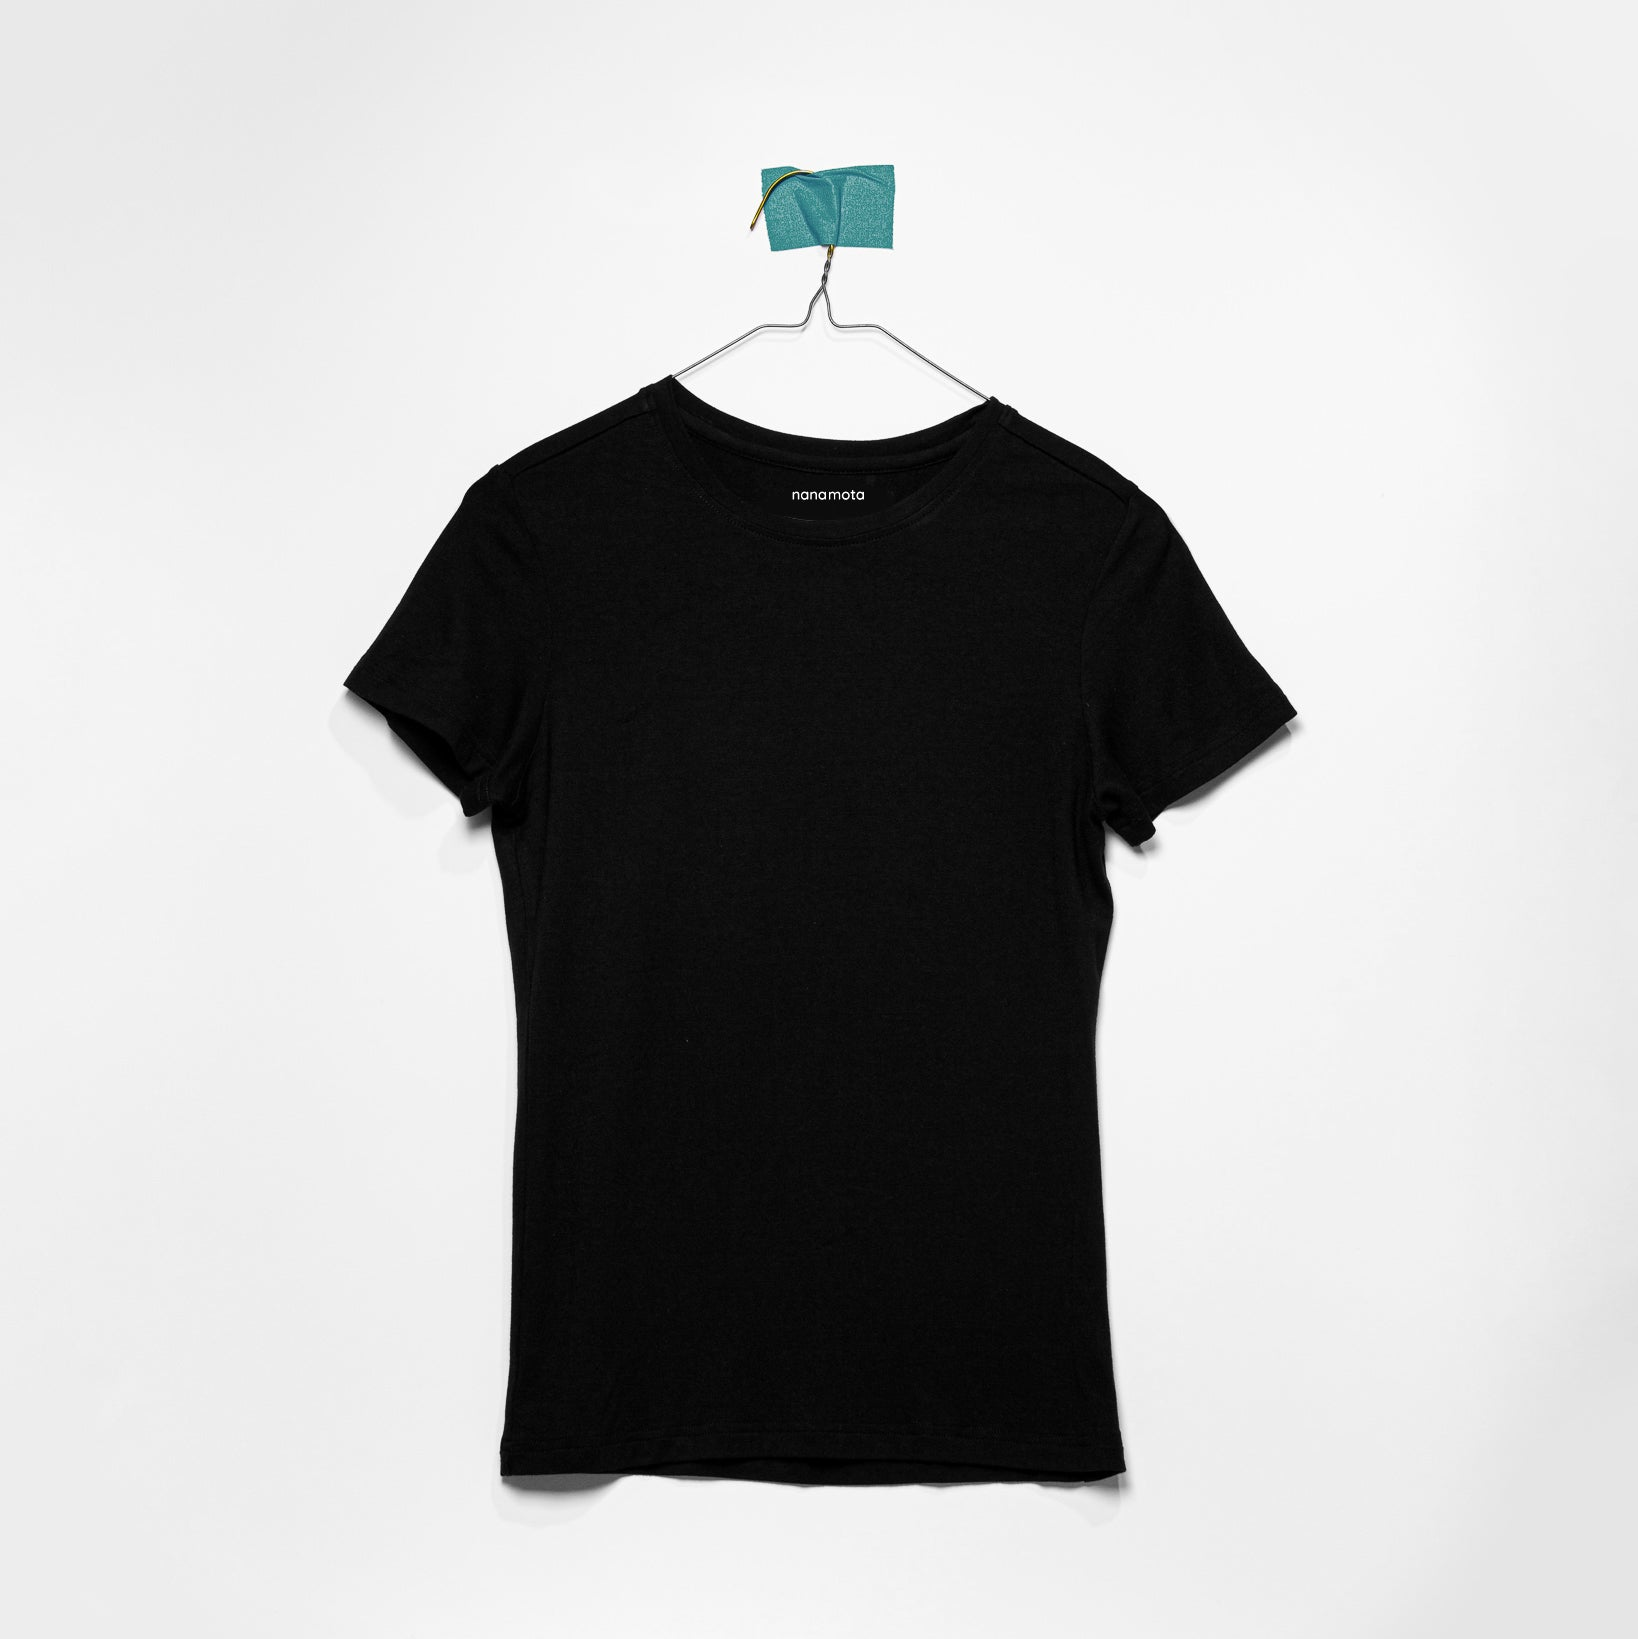 'THE SOFTEST TEE' WOMENS FITTED SHORT-SLEEVE BLACK